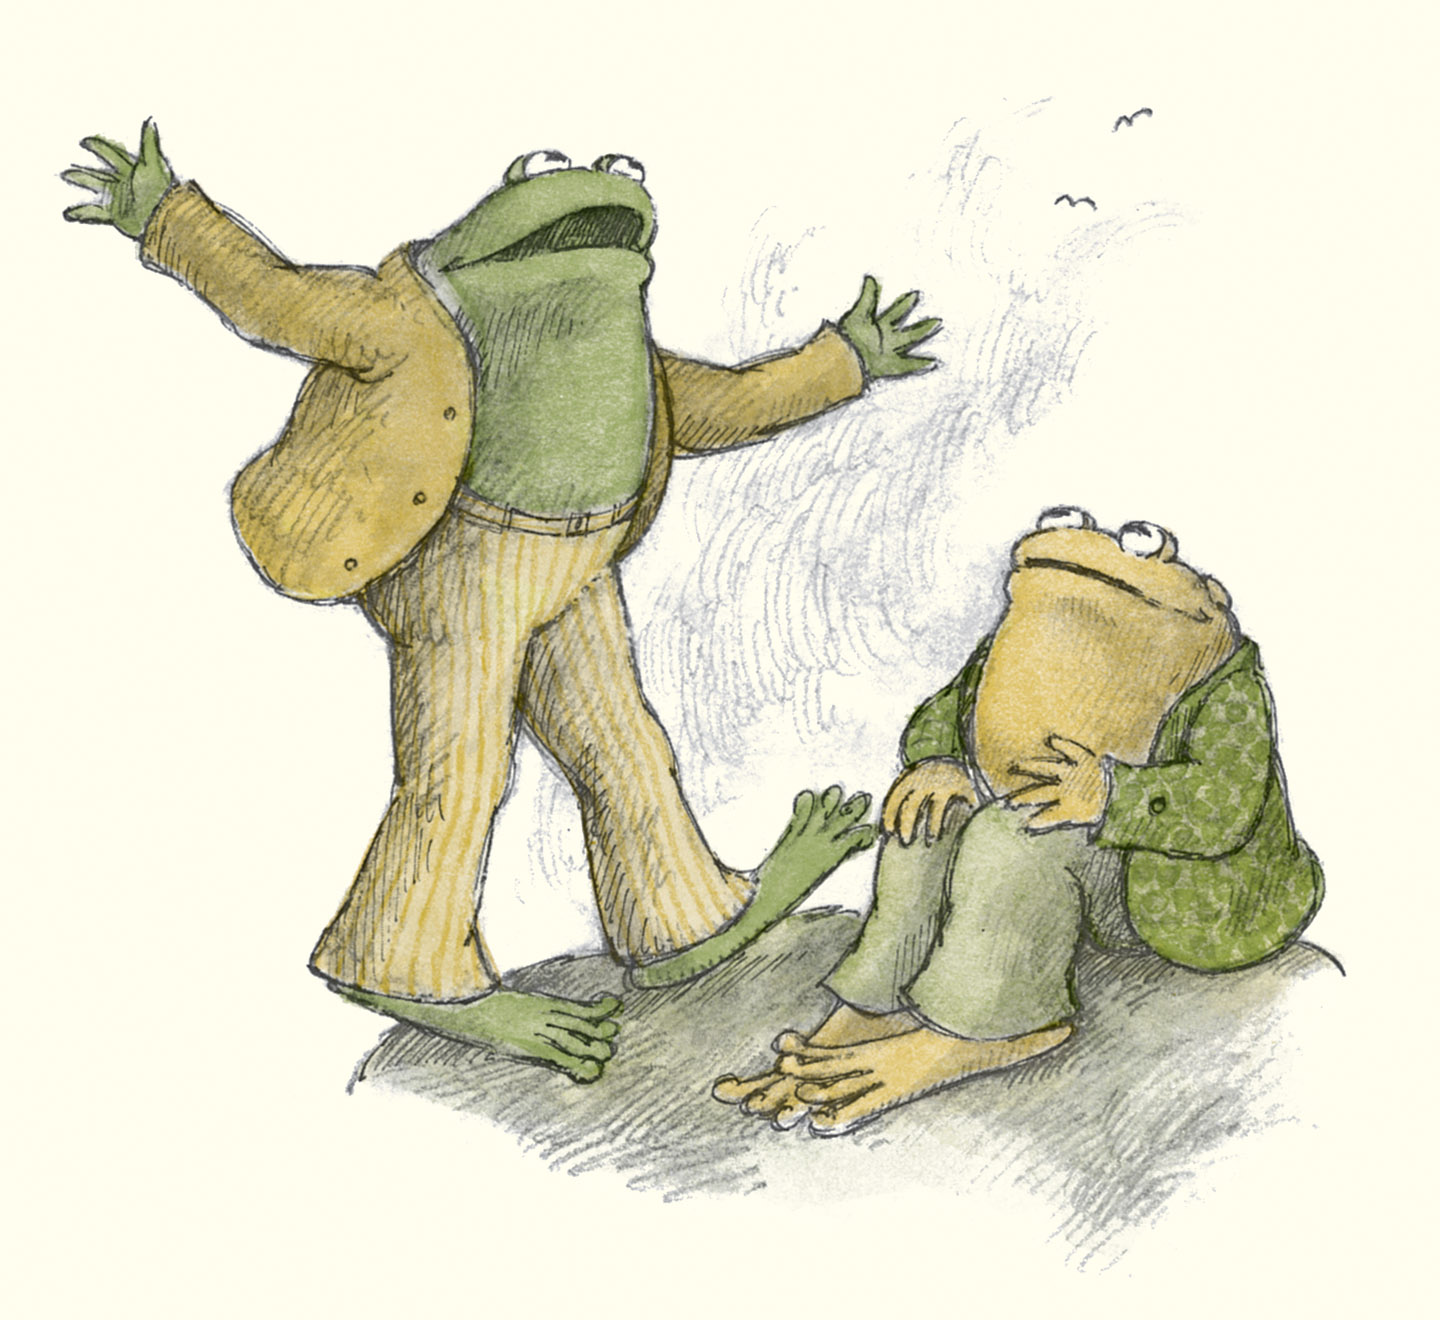 FROG AND TOAD THE GARDEN PDF